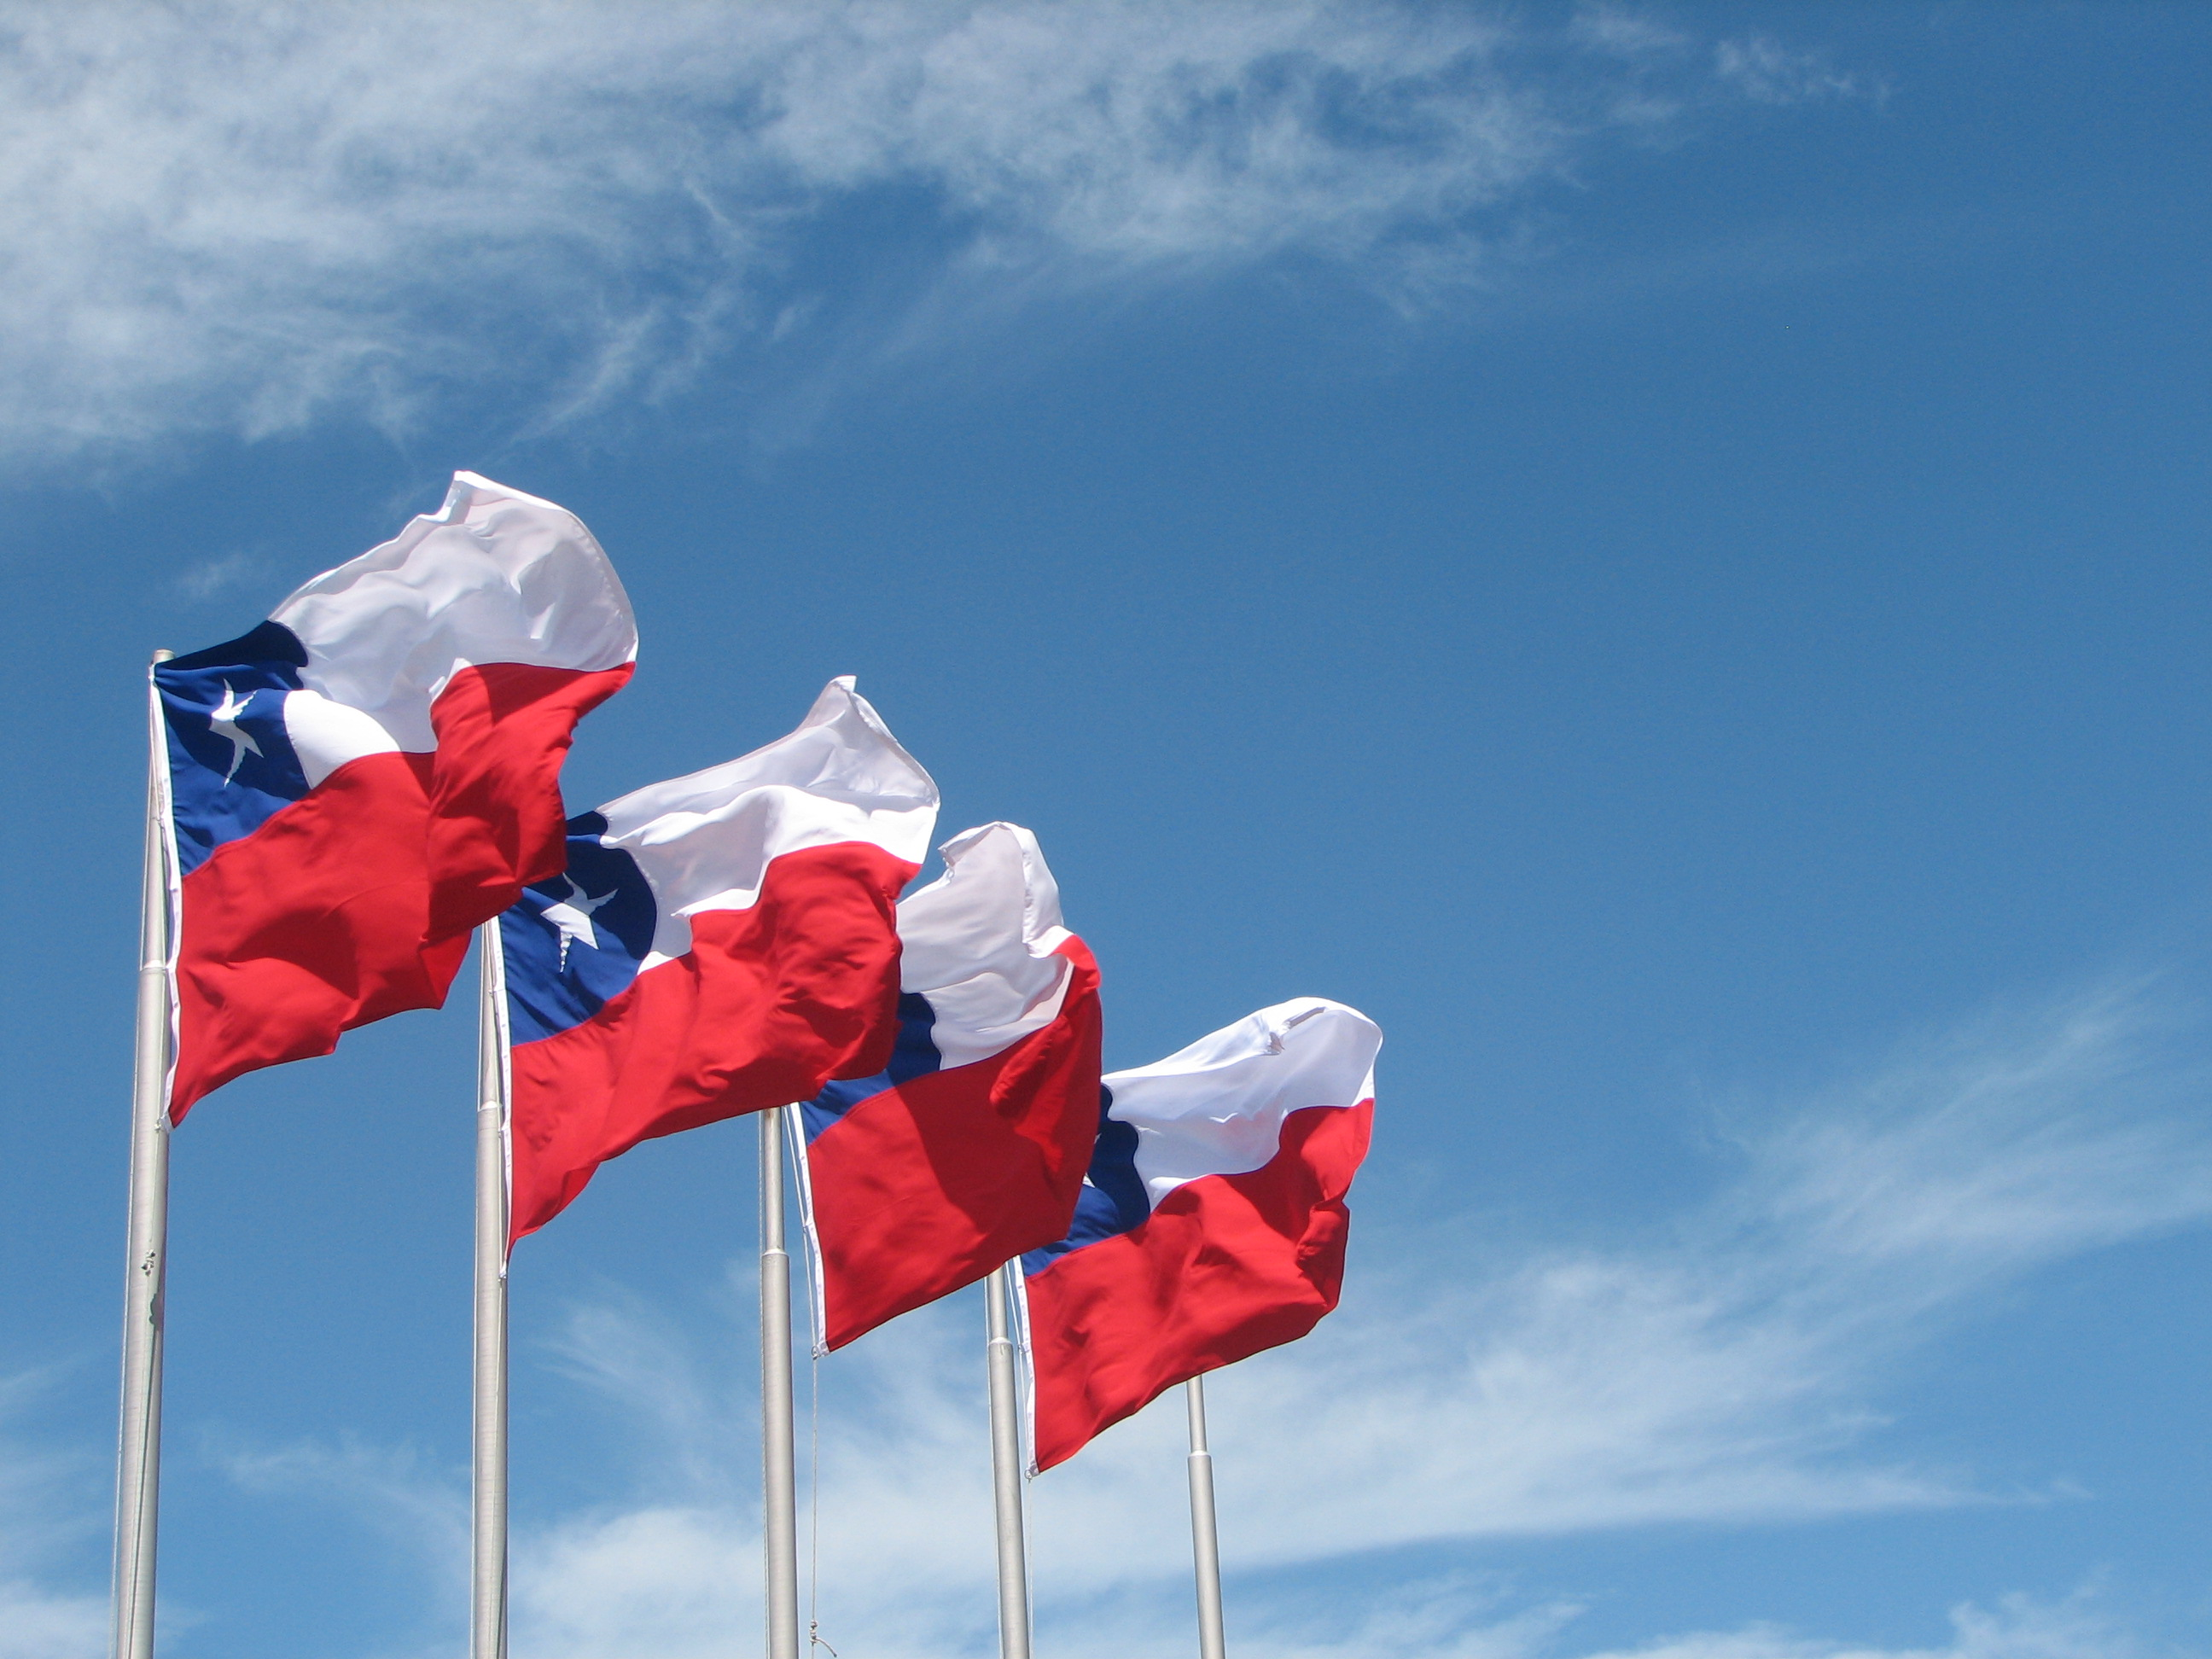 flags of Chile